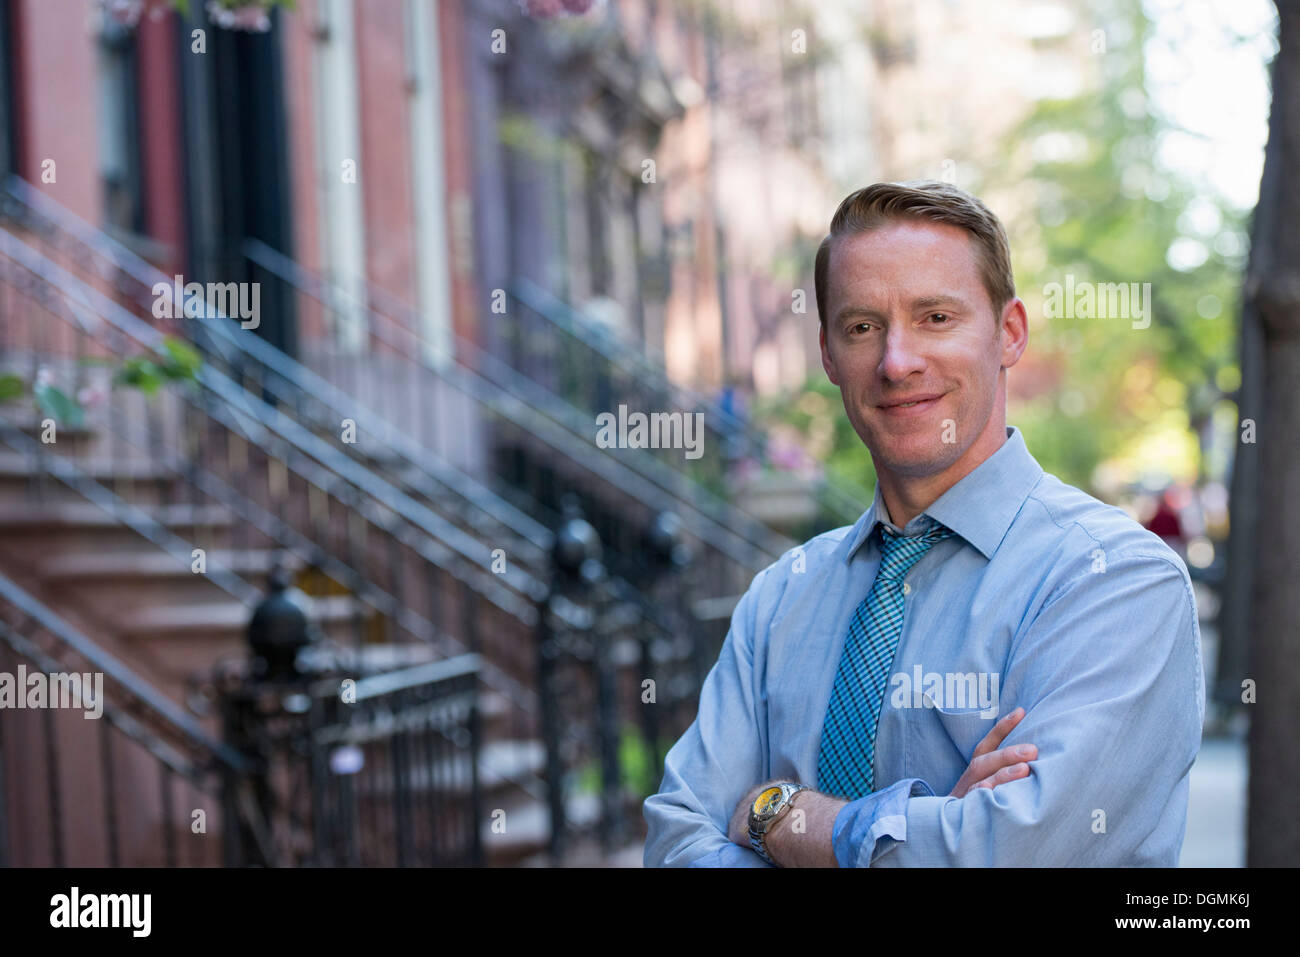 A man in a blue shirt and blue tie with arms folded, standing on the sidewalk - Stock Image